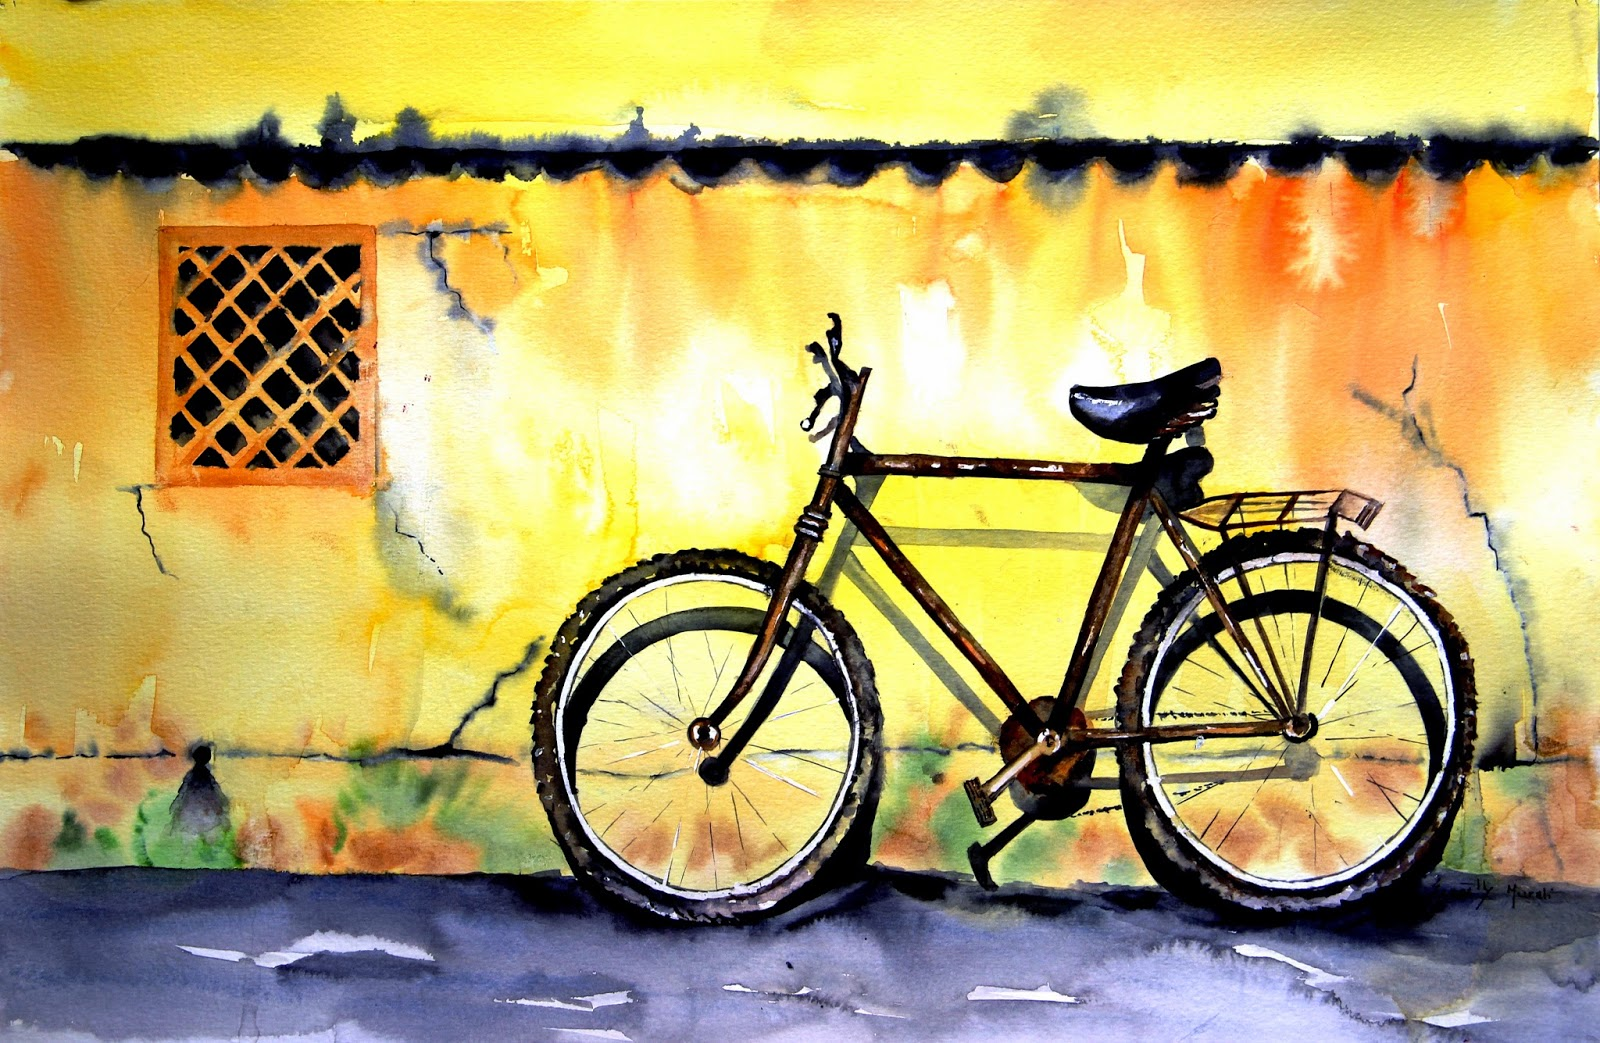 Painting by Spoorthy Murali, artist profile at Art Scene India, Image courtesy artist